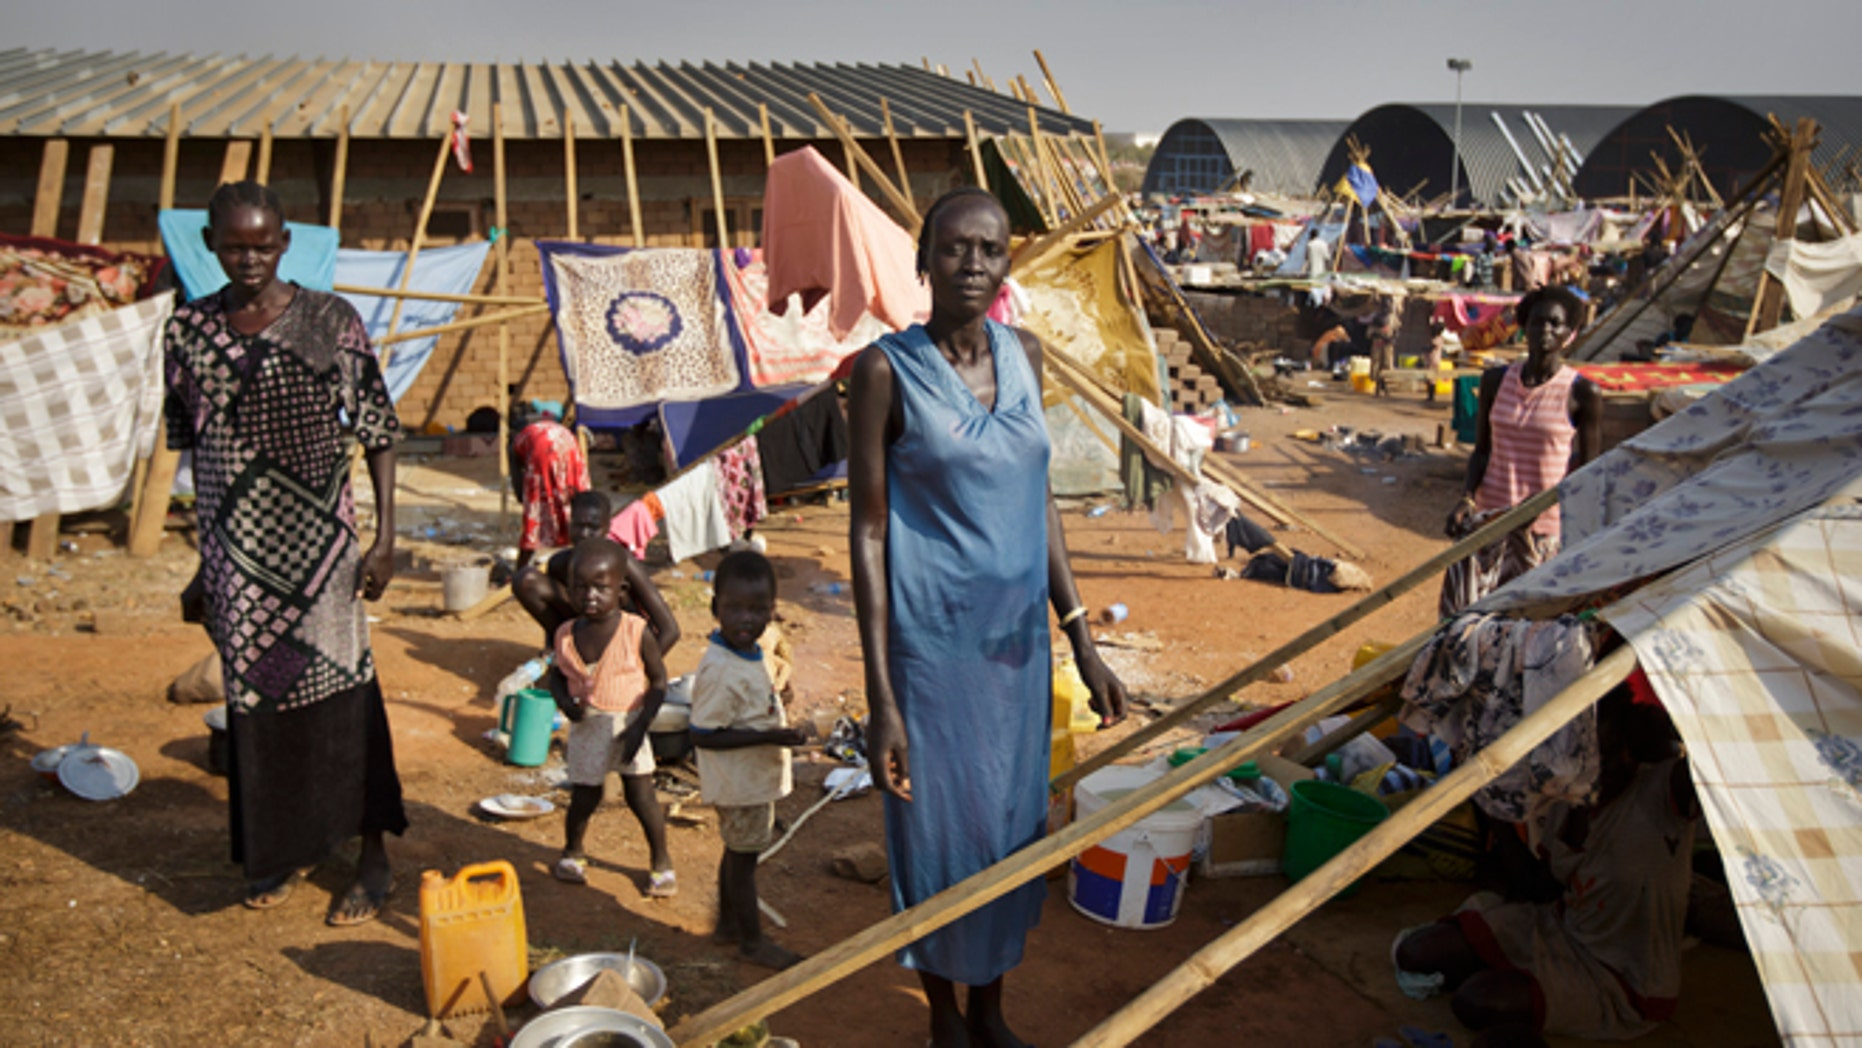 Dec. 31: A displaced family stand by their makeshift shelter at a United Nations compound which has become home to thousands of people displaced by the recent fighting, in the Jebel area on the outskirts of Juba, South Sudan.